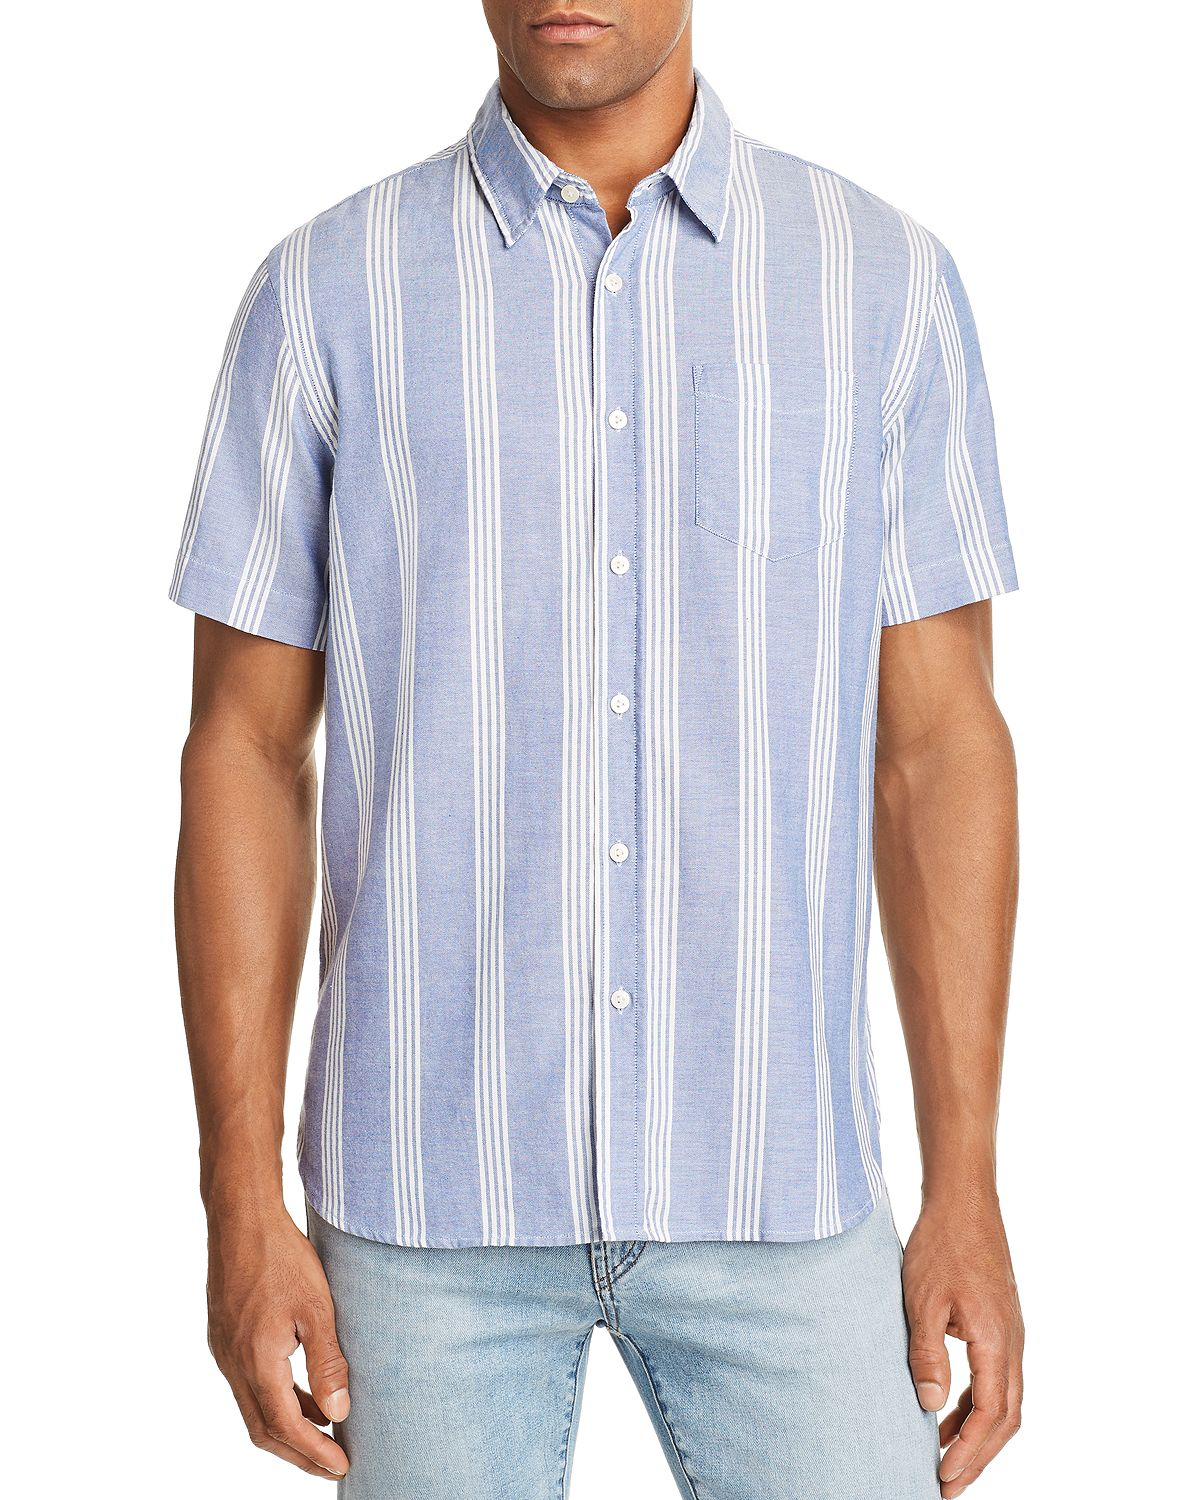 Jachs Ny Wide-stripe Regular Fit Button-down Shirt